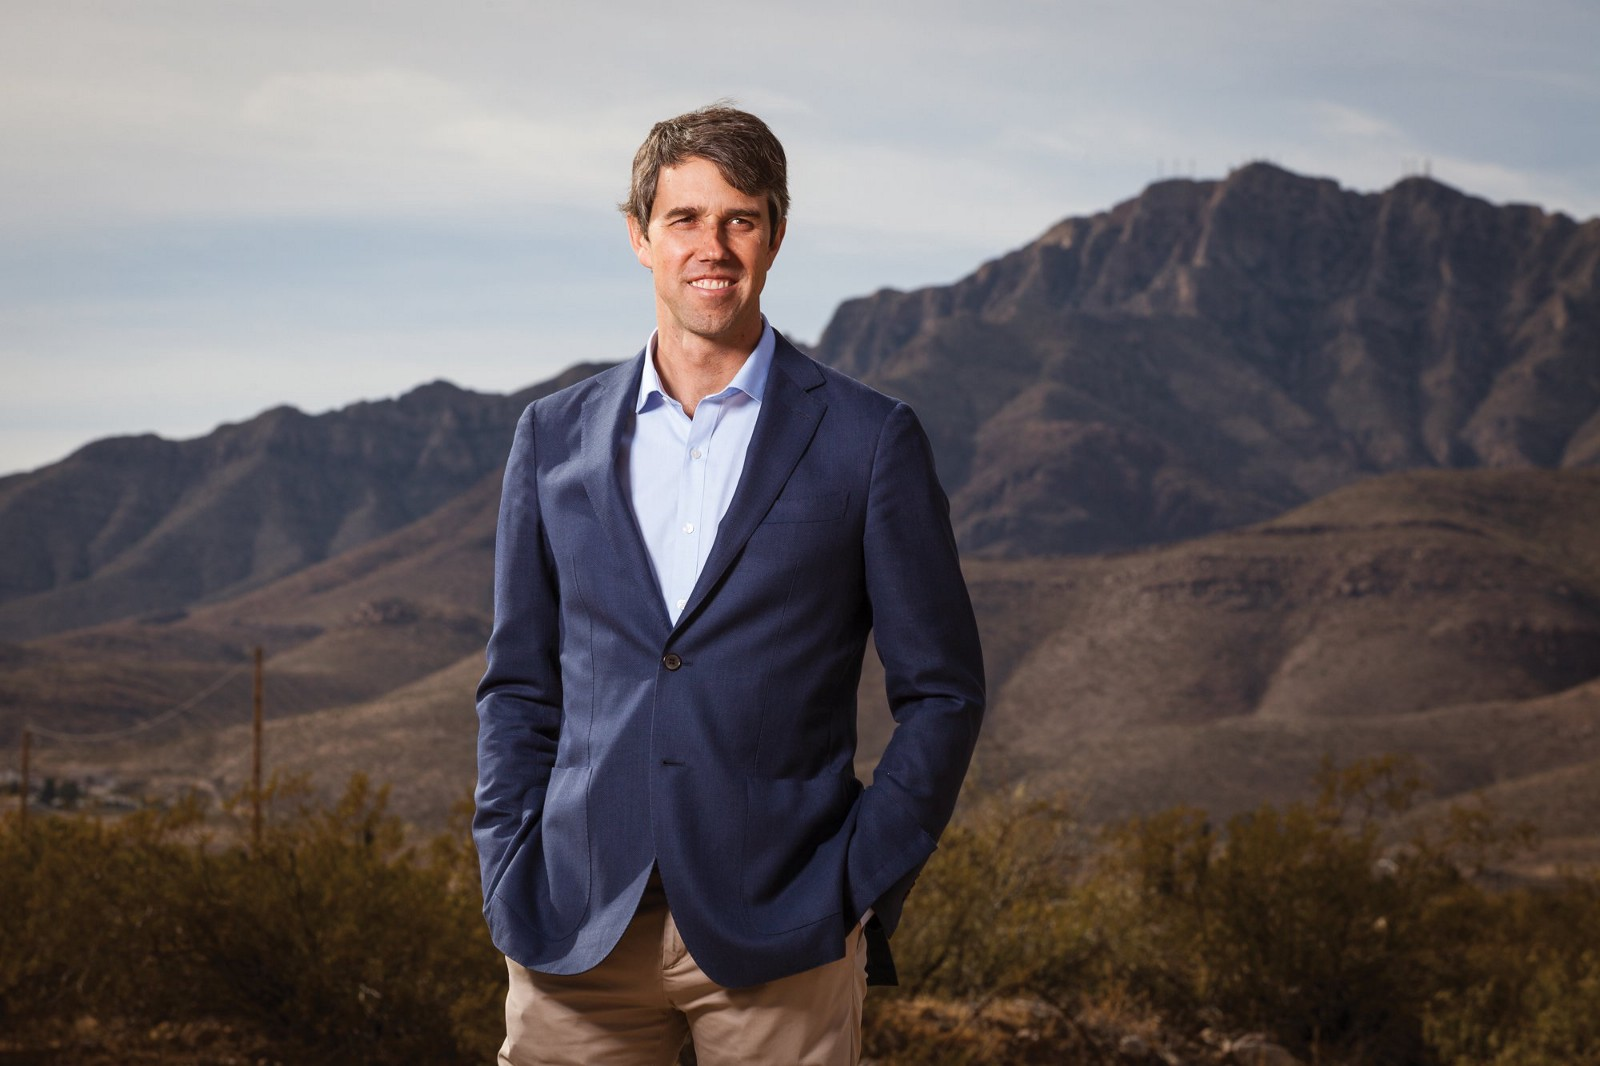 338974b3 In the wake of his narrow loss in the Texas senate race against Ted Cruz,  Beto O'Rourke has set the political world abuzz about what he will do next.